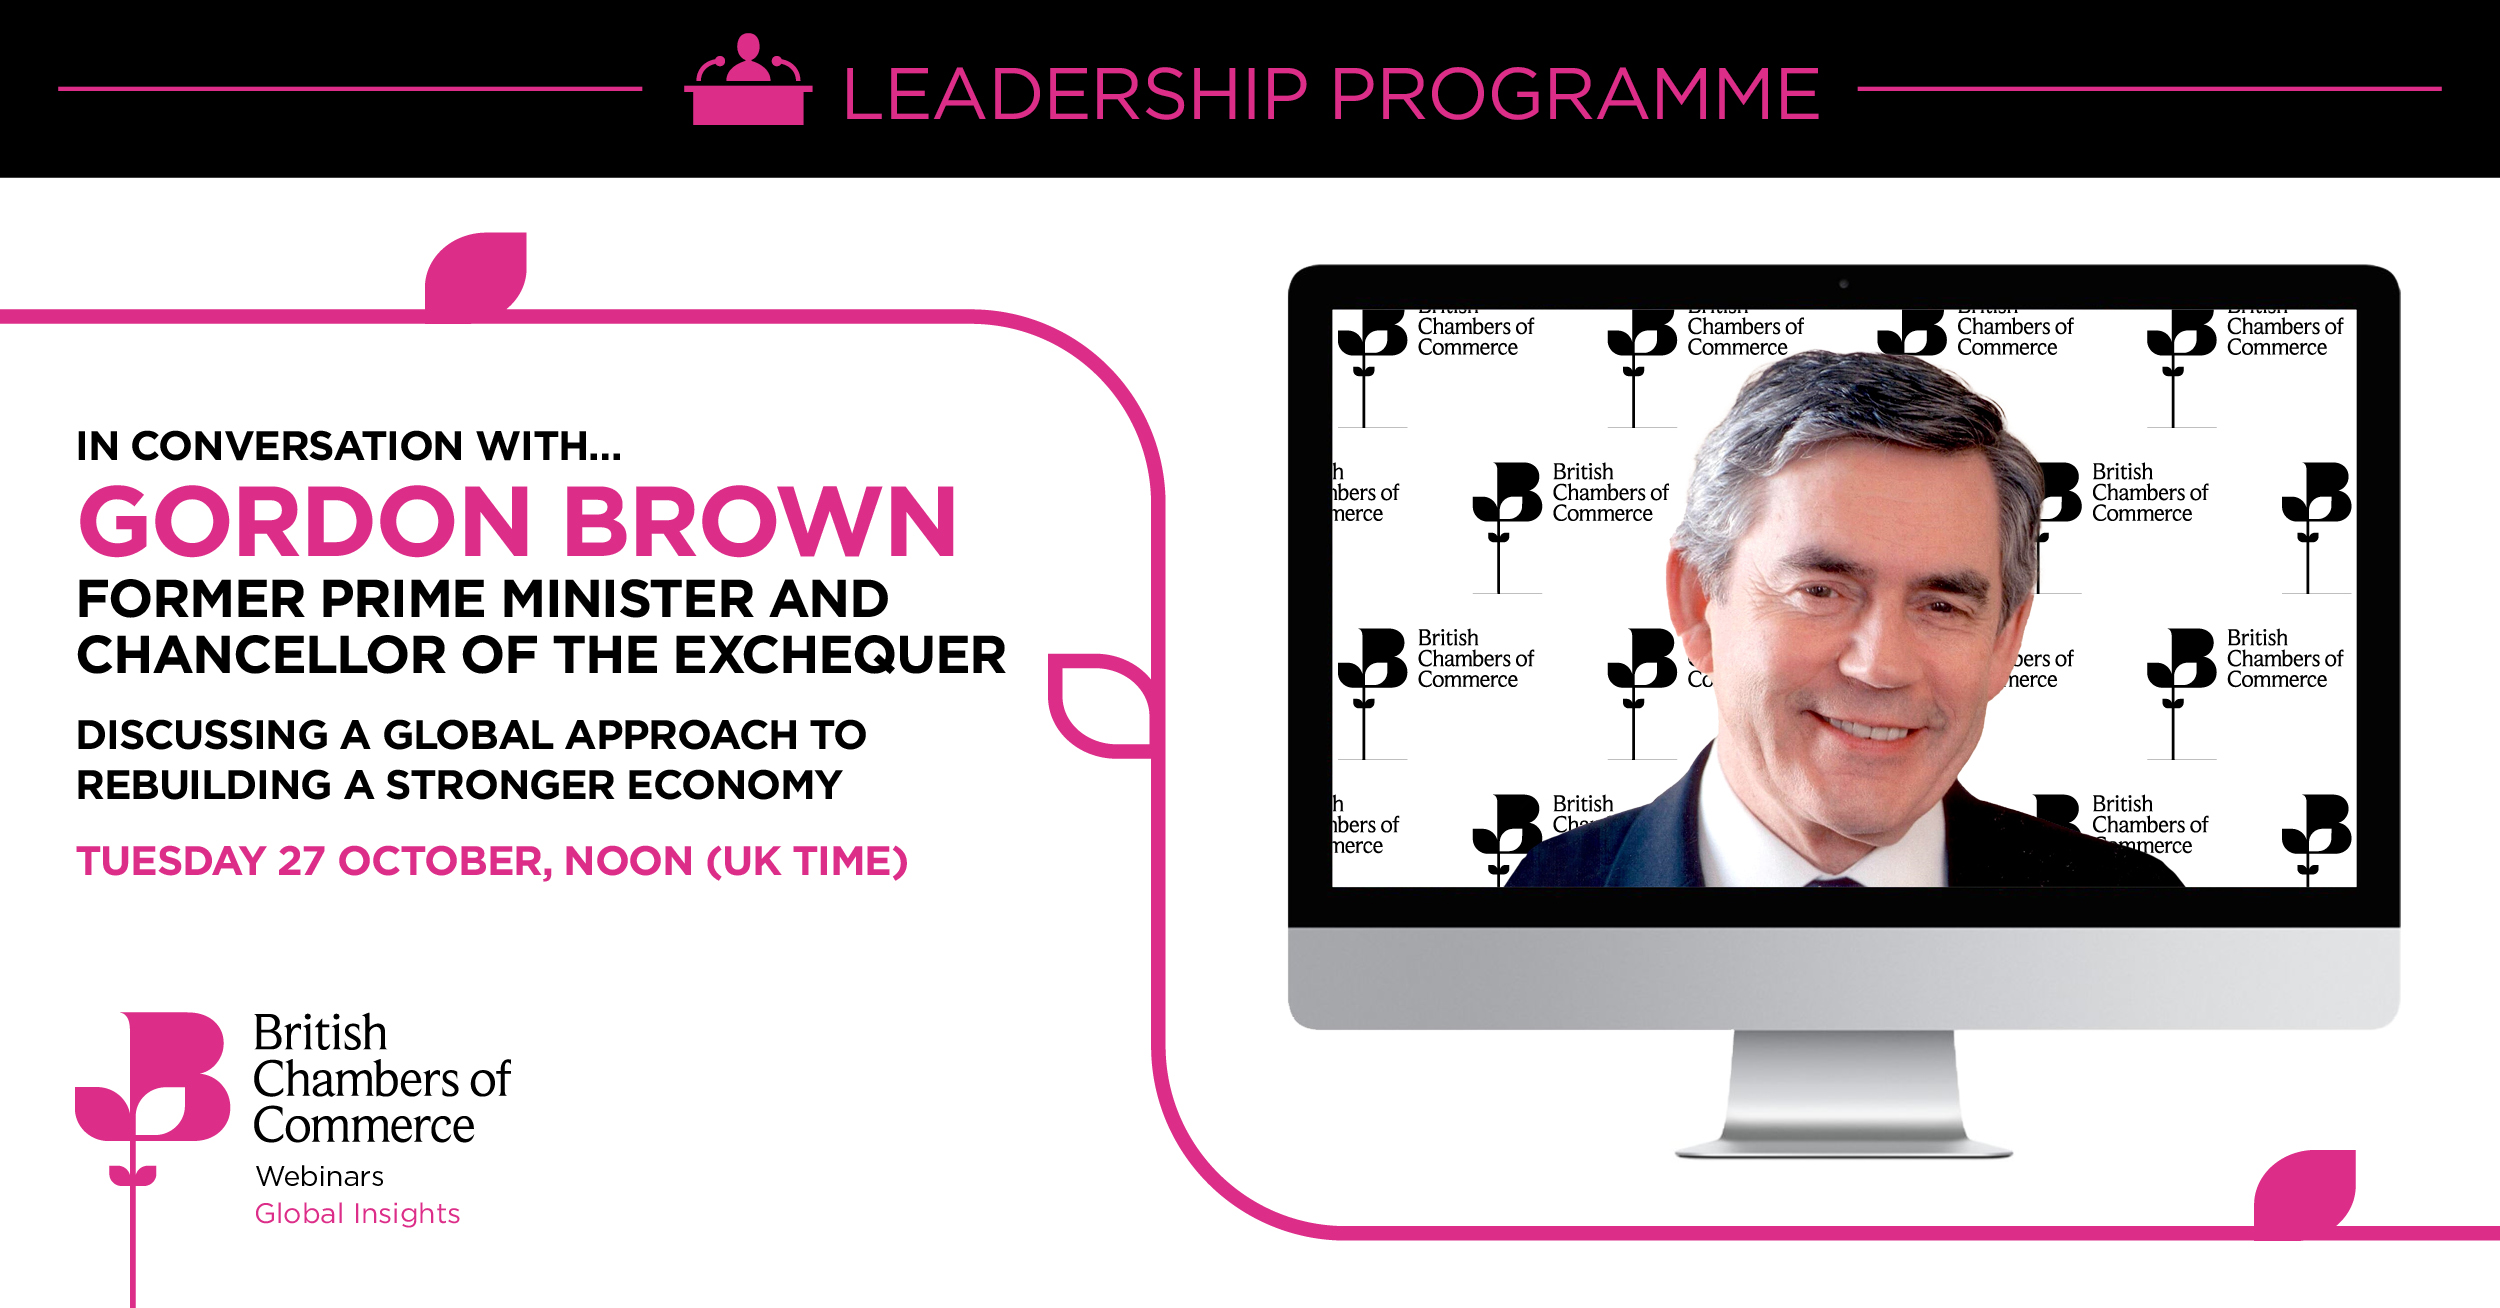 A Conversation with Gordon Brown: A Global Approach to Rebuilding a Stronger Economy